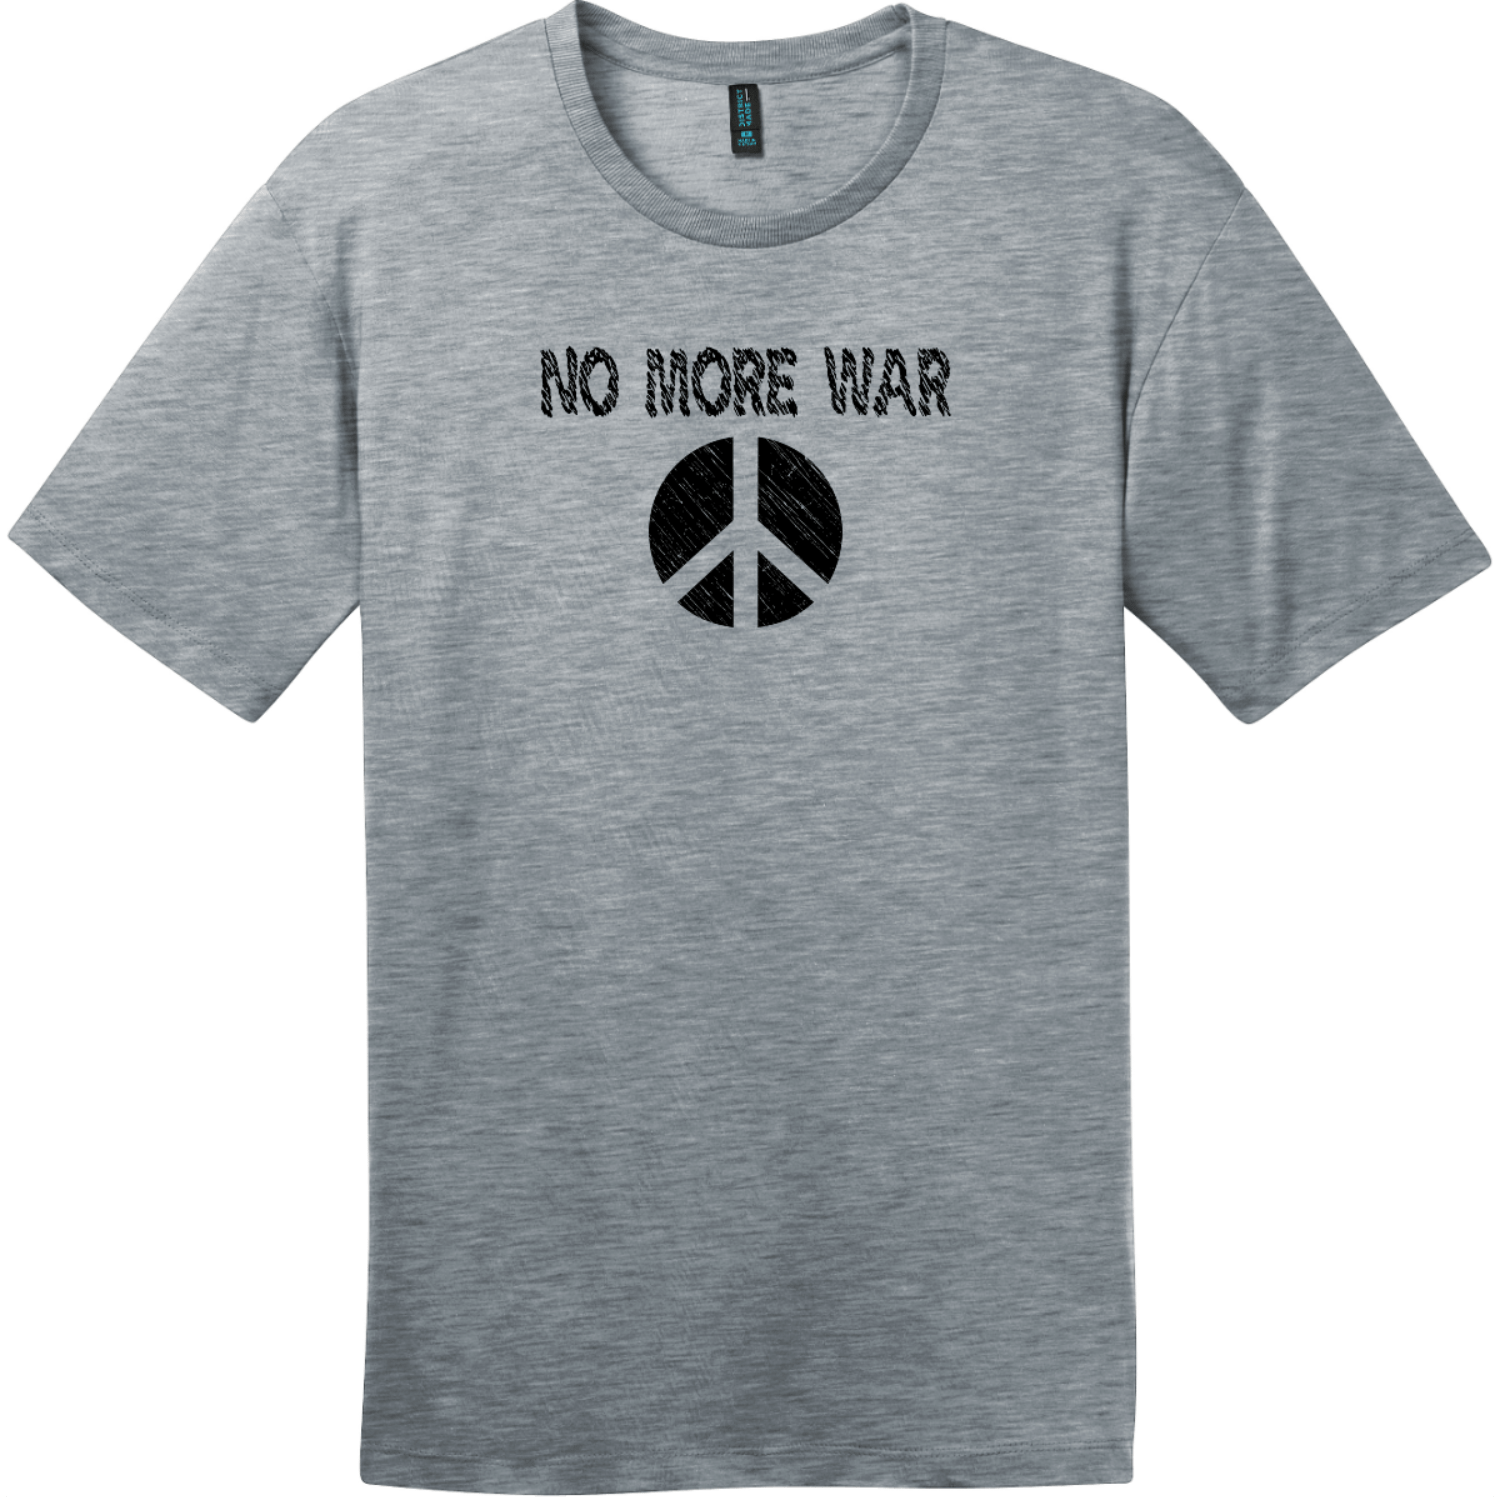 No More War T-Shirt Heathered Steel District Perfect Weight Tee DT104